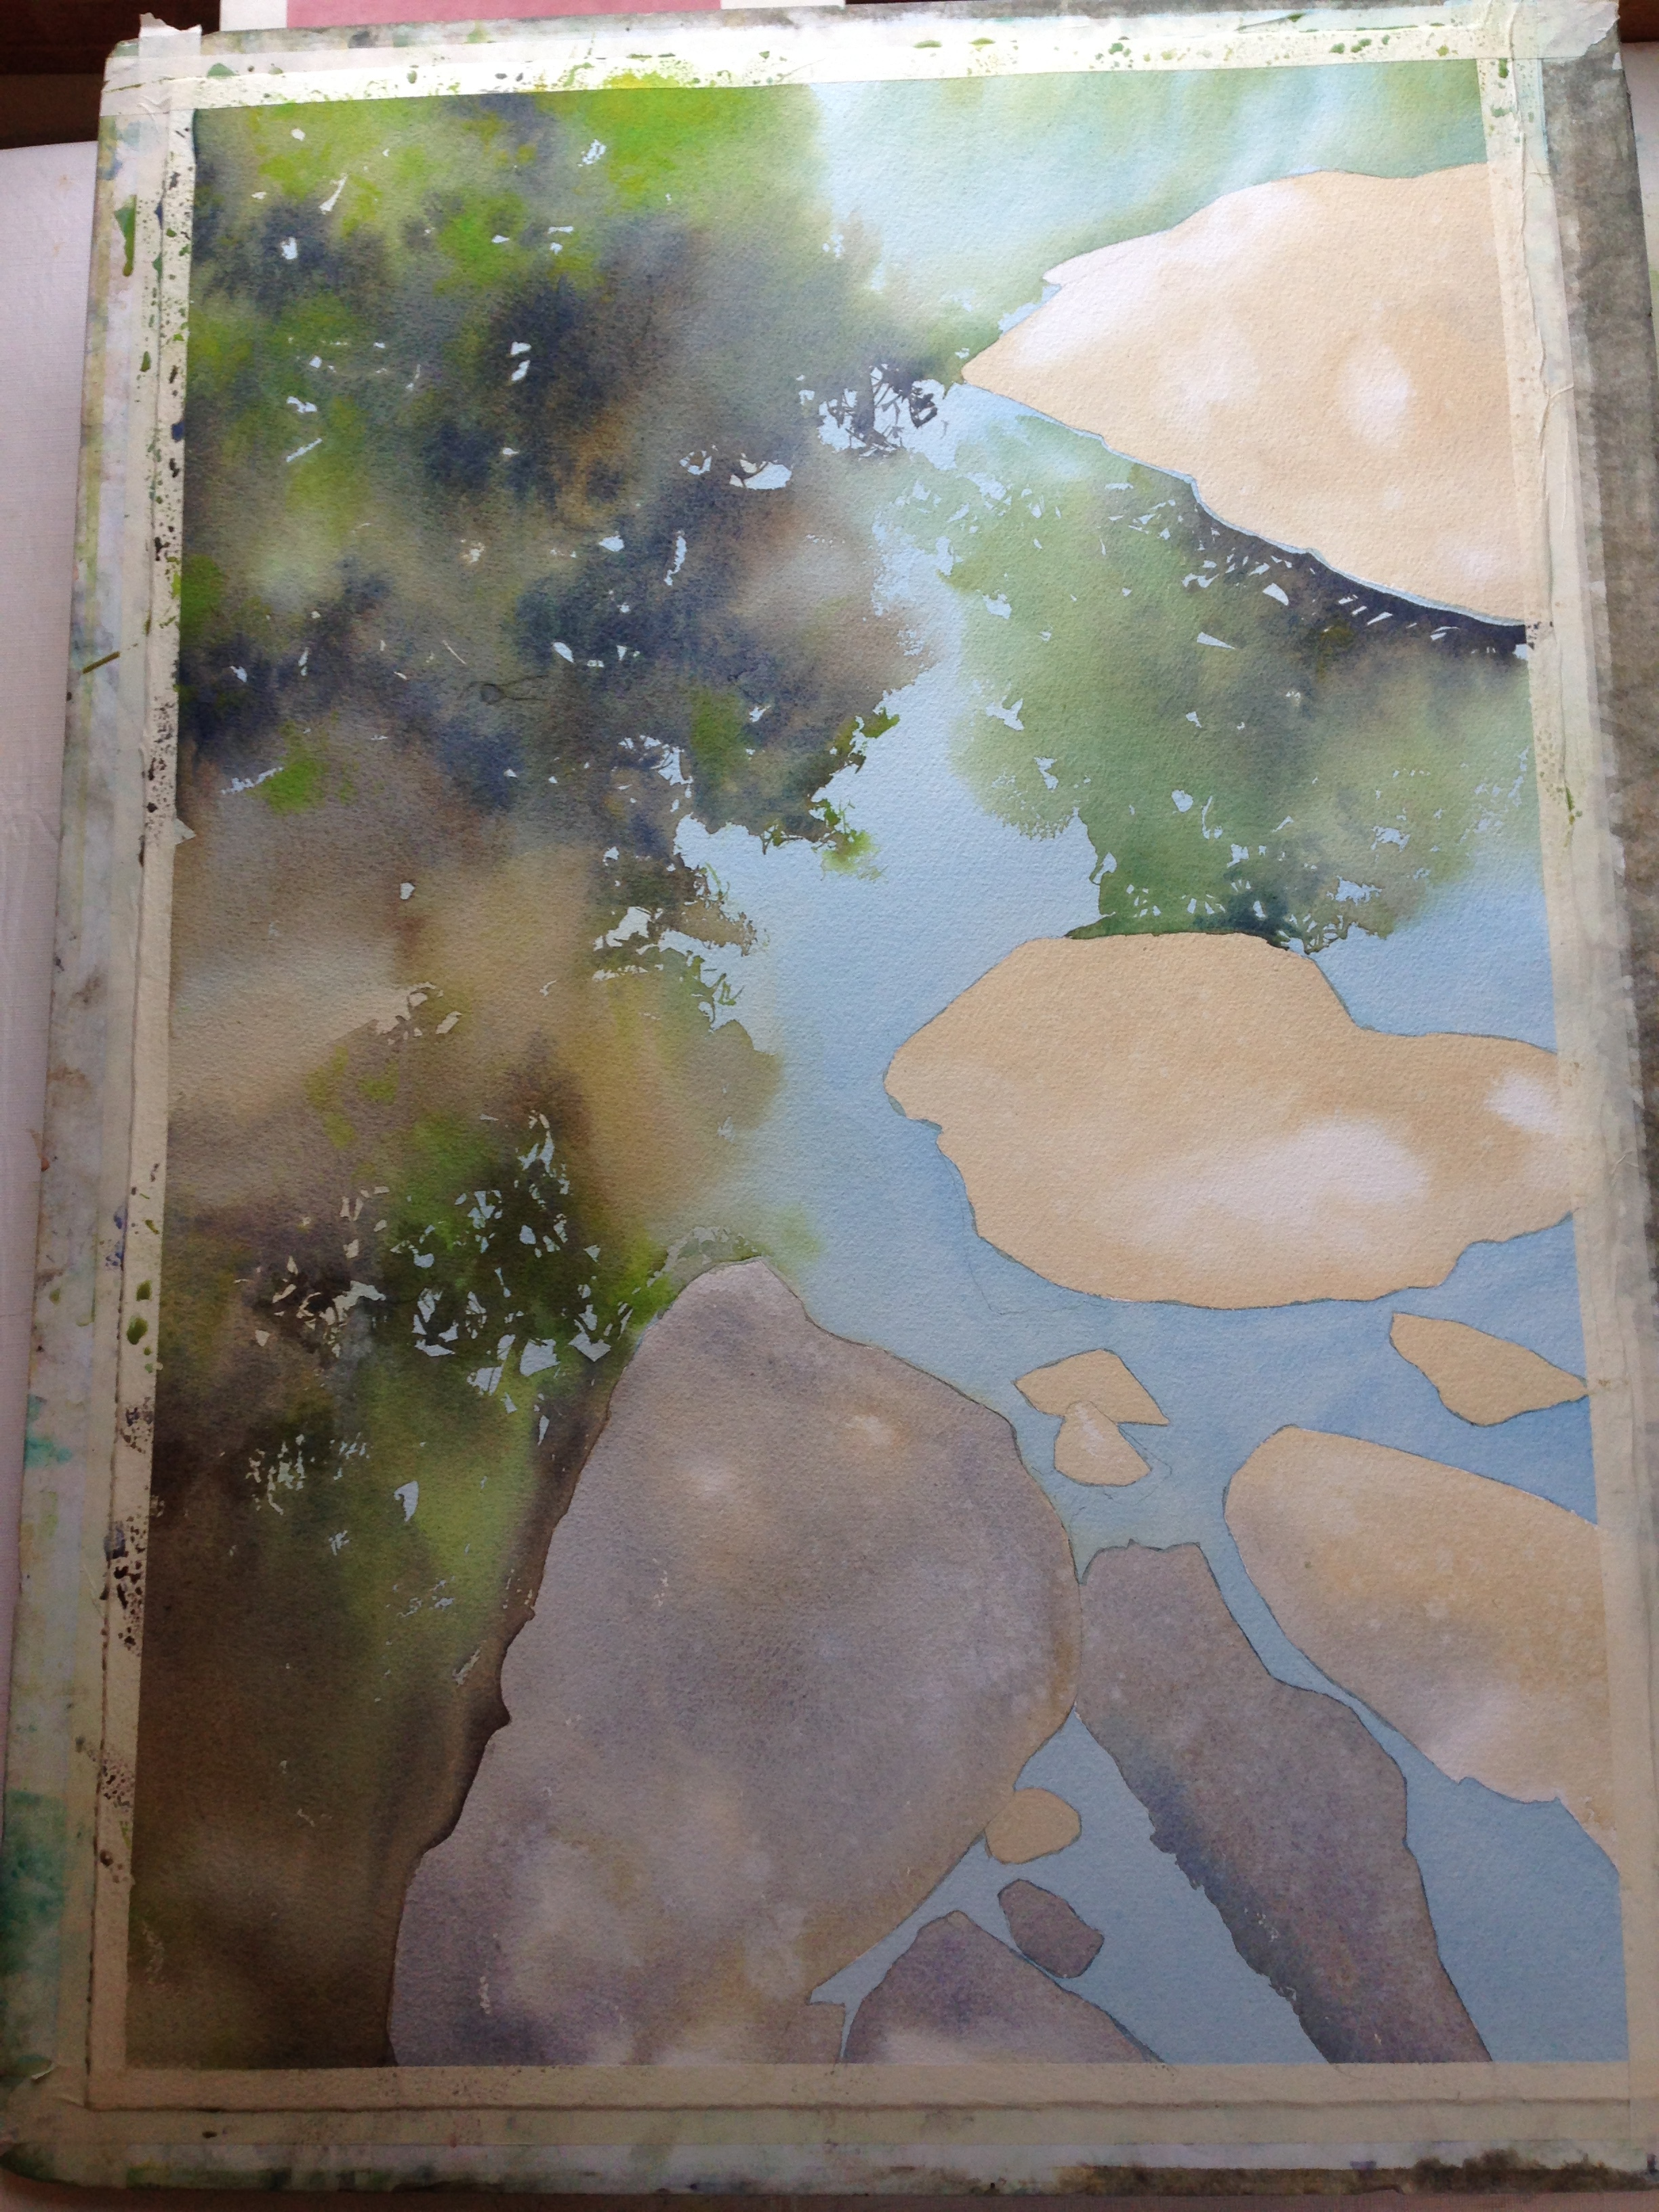 step 3- the tree reflections go in.  The paper is dry when I start, so I can control when I get hard and soft edges.